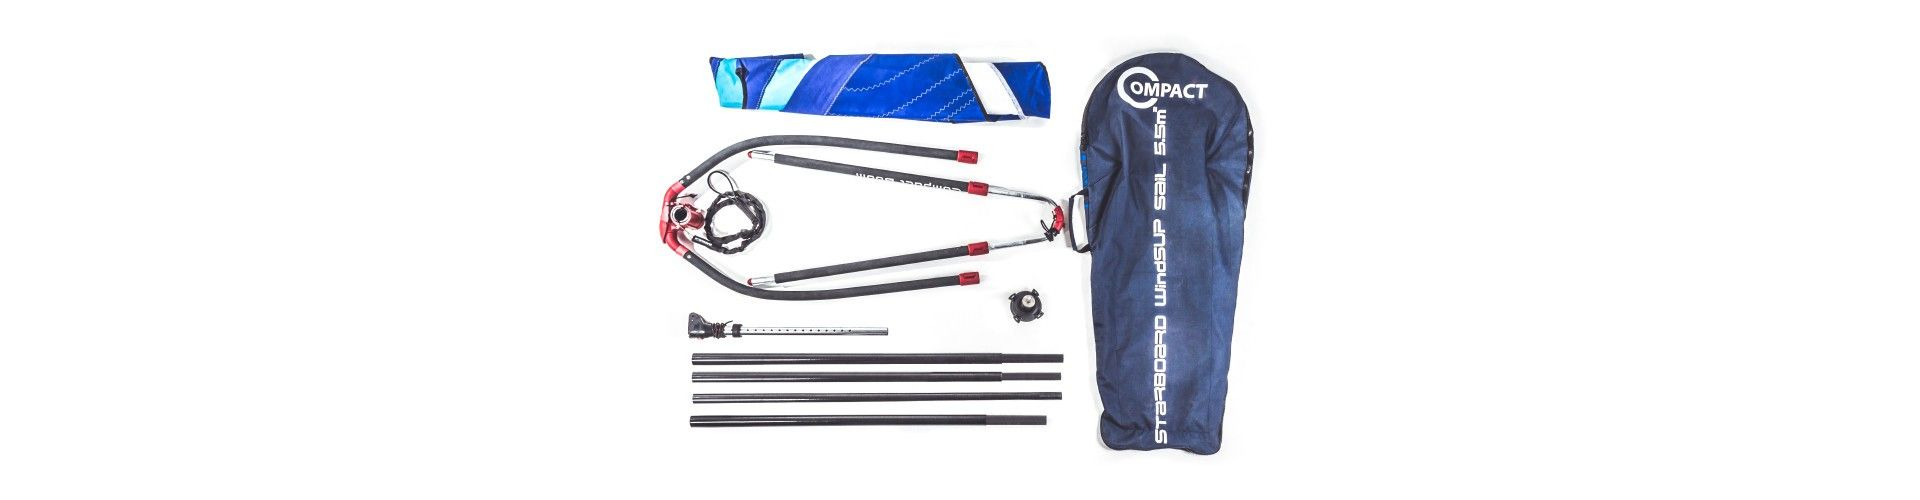 Starboard 2015 Windsup Compact Package 5.5